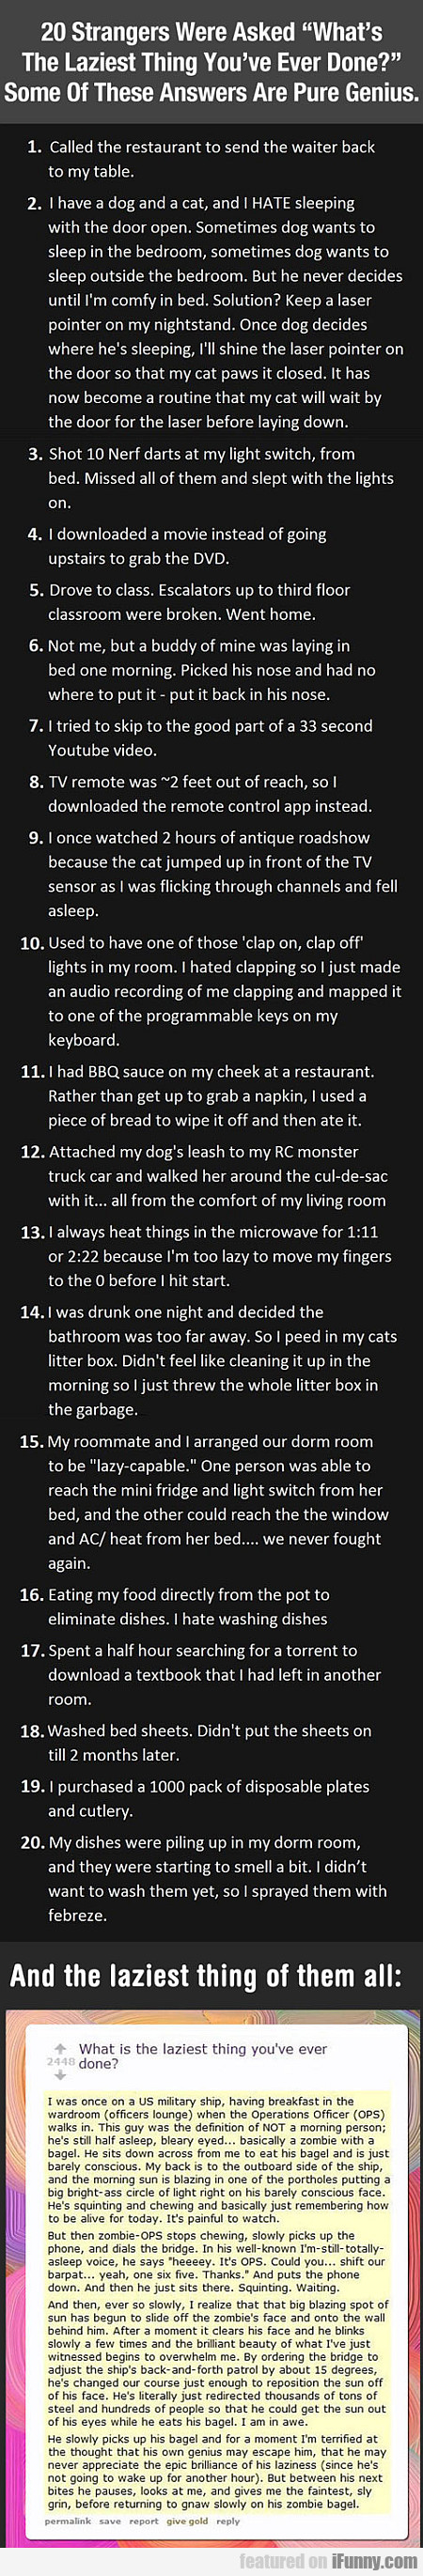 20 Strangers Were Asked What's The Laziest Thing..